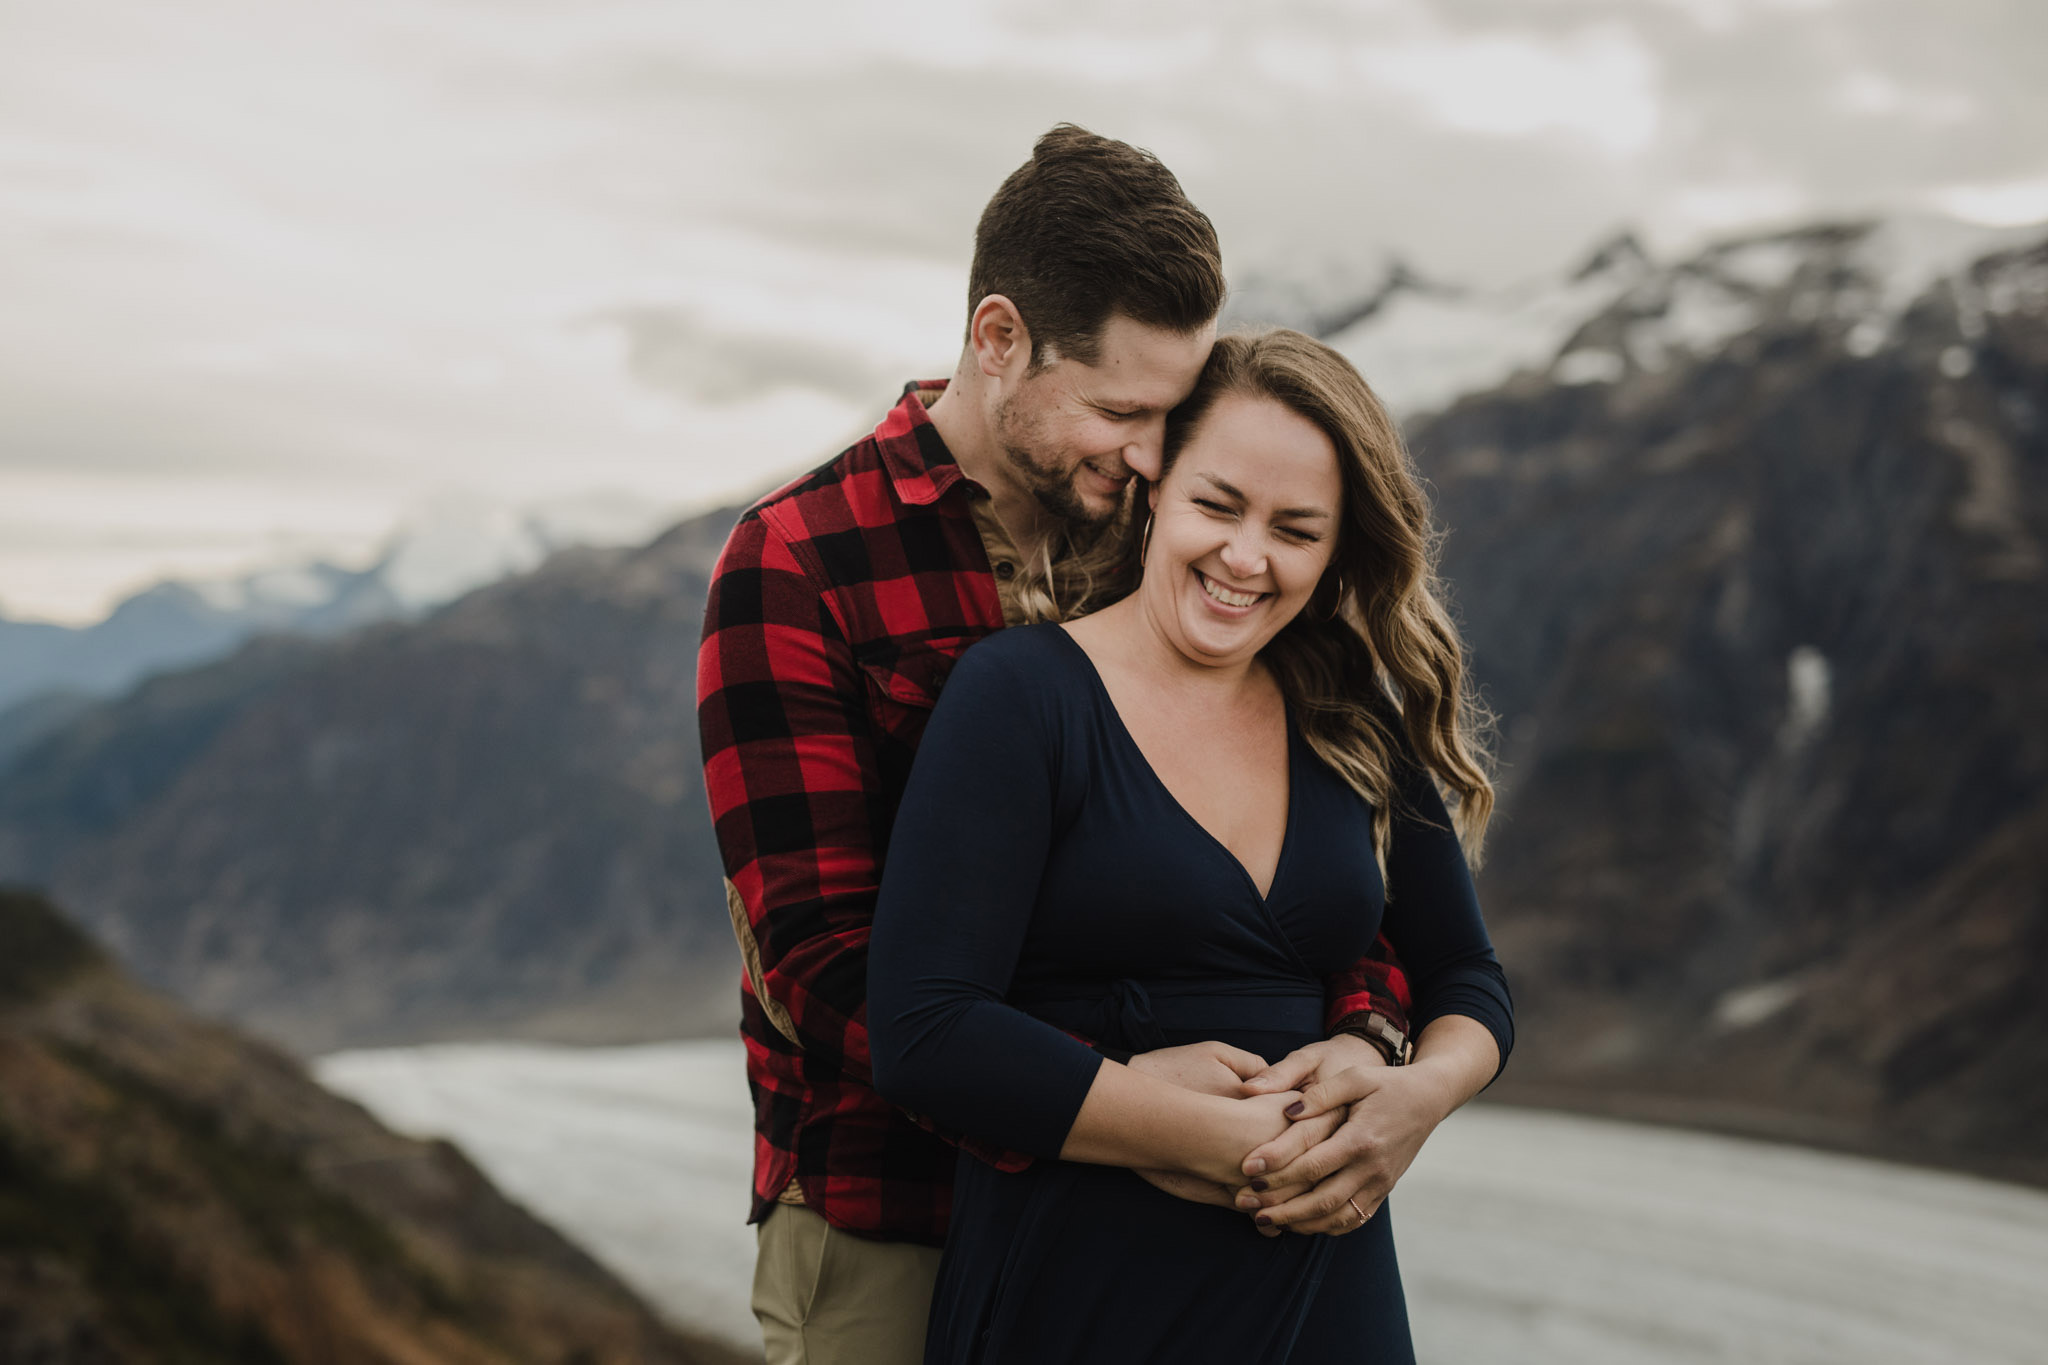 BC Mountain Top Engagement Photographer - giggles